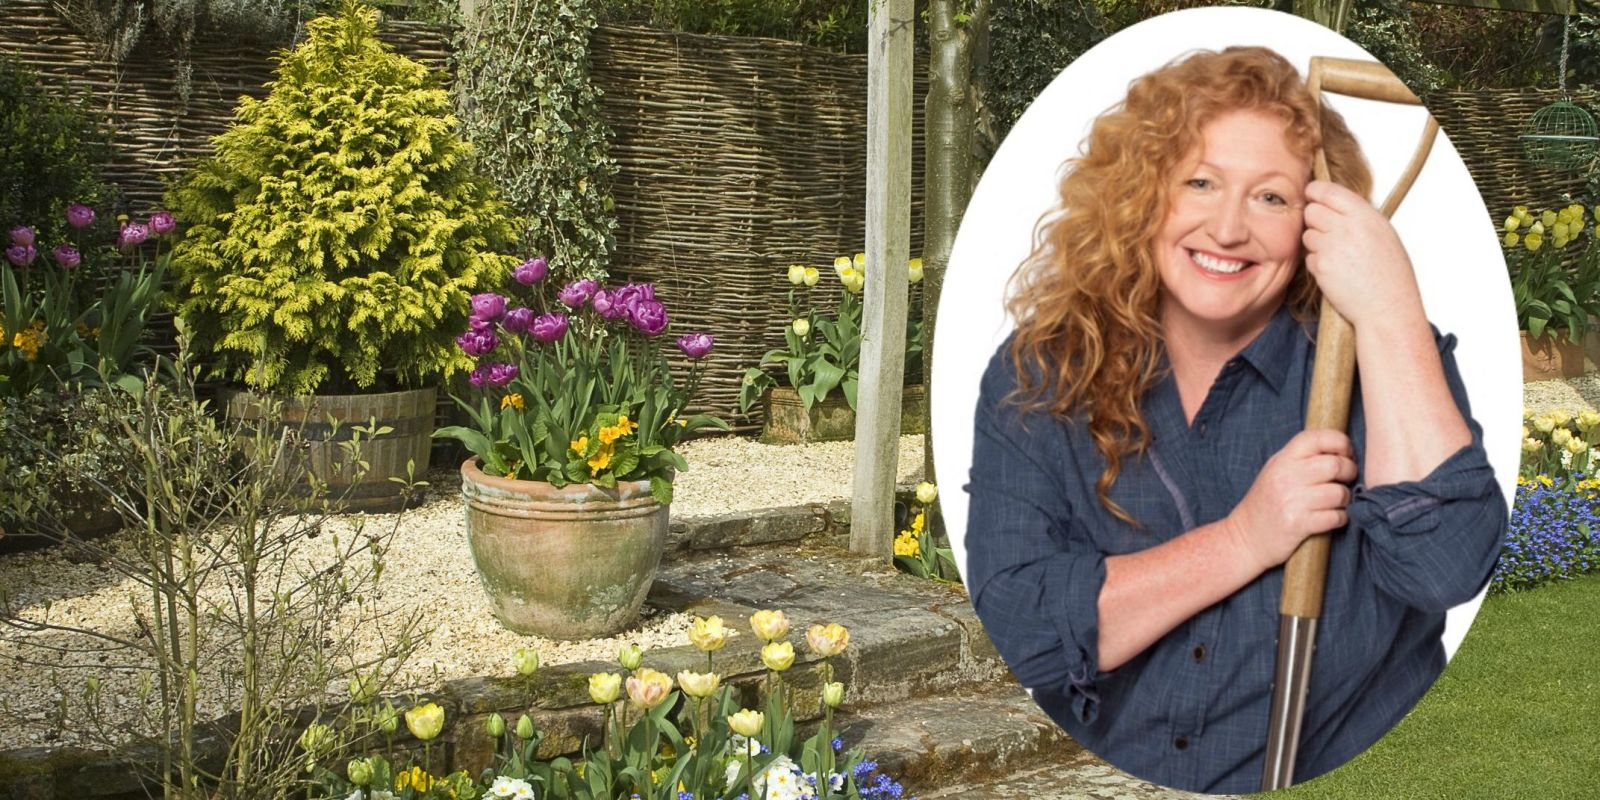 Charlie Dimmock 39 The More People I Can Encourage To Get